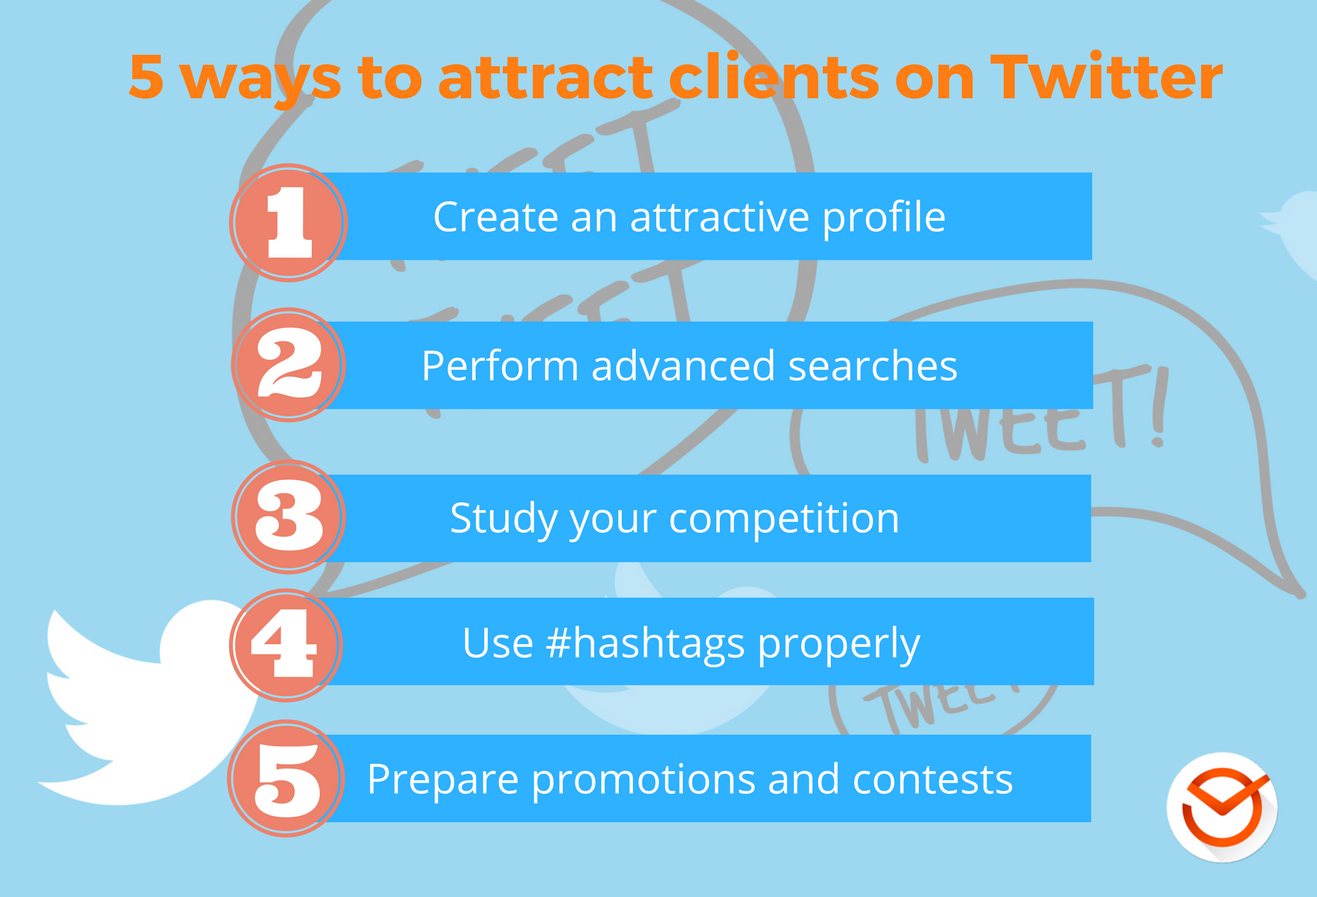 5 ways to attract clients on Twitter